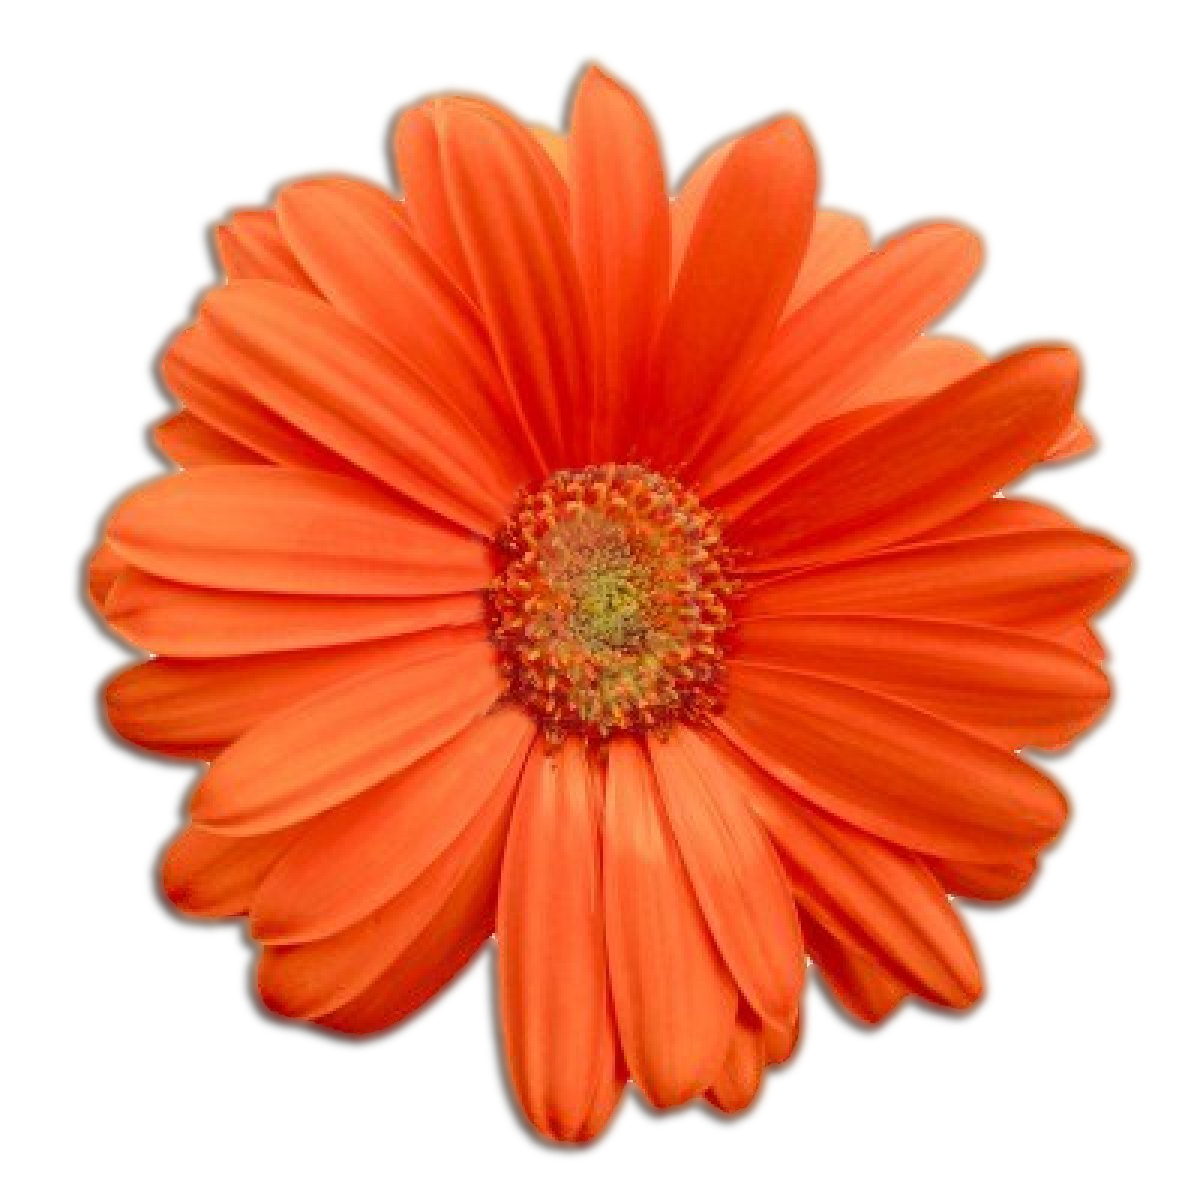 Orange flower png. Free icons and backgrounds